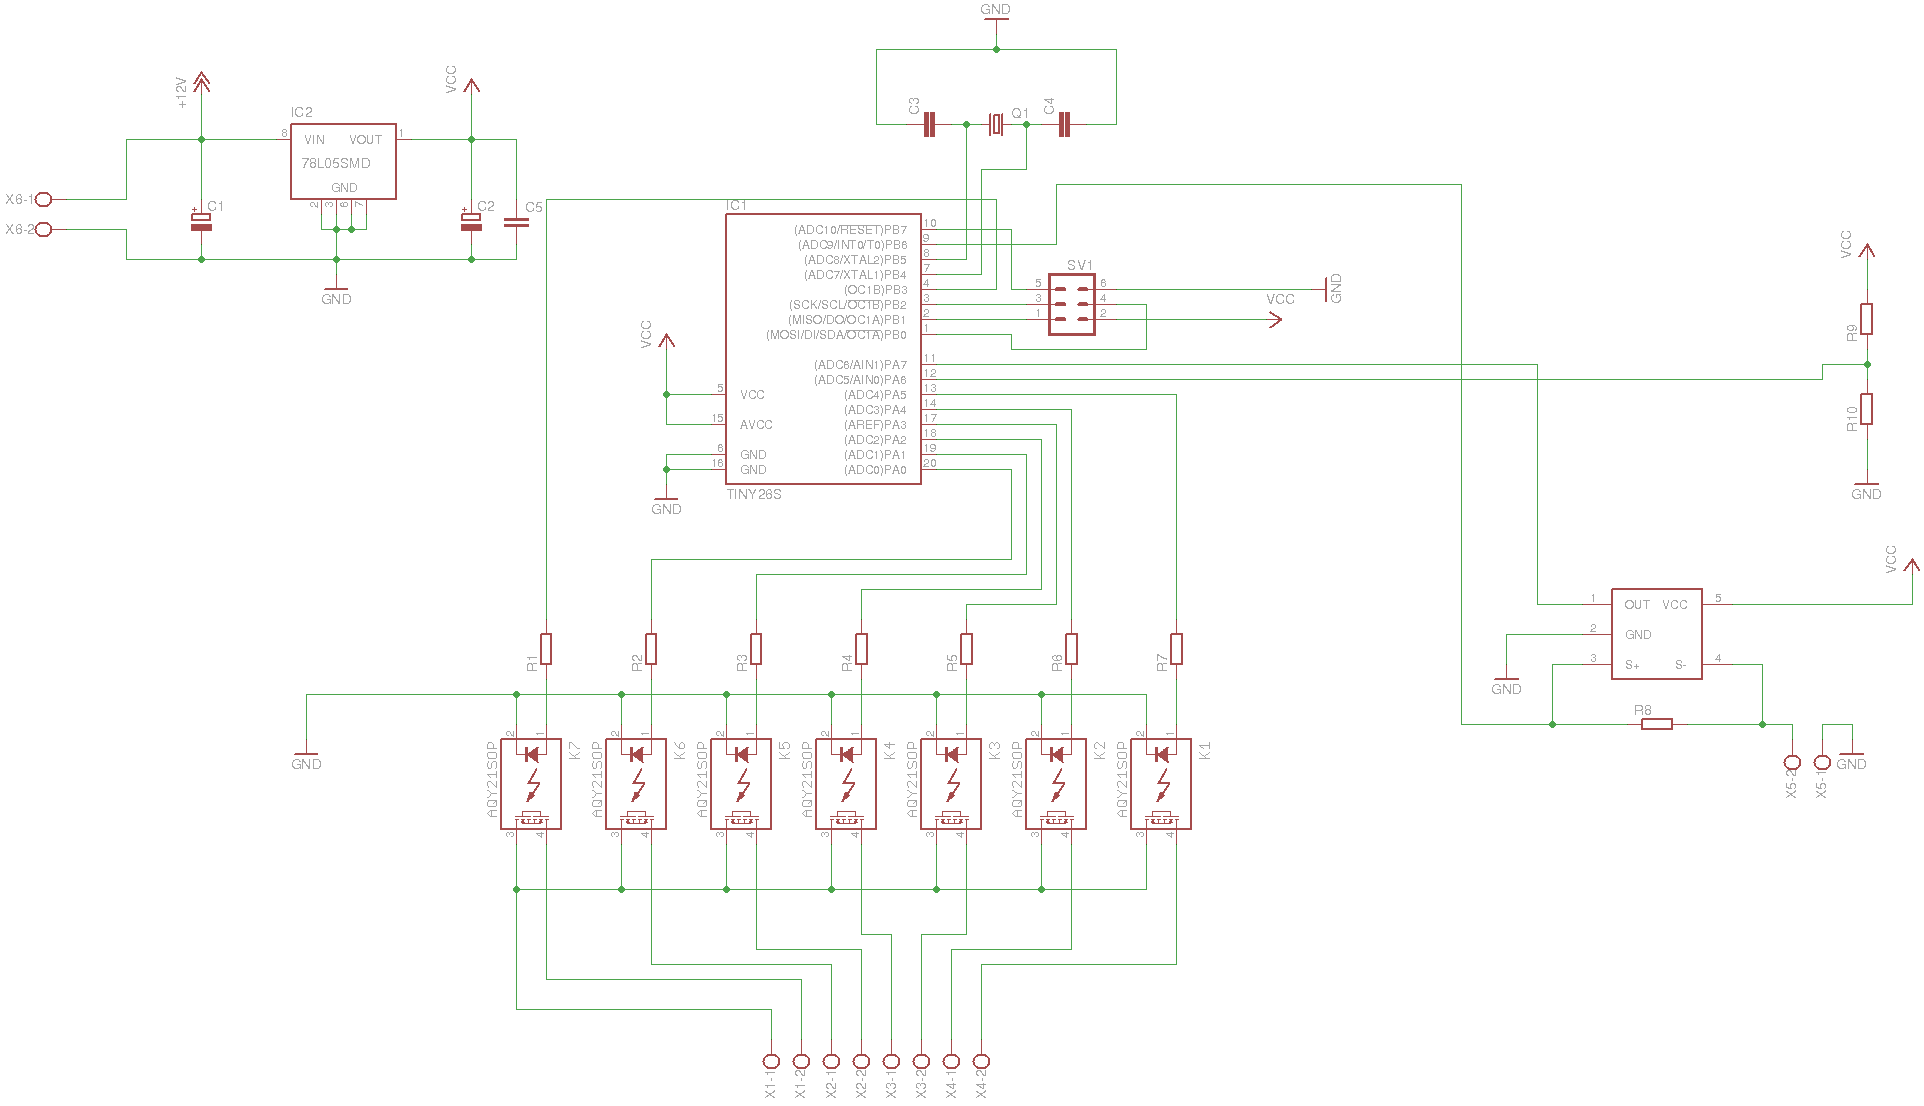 touch switch controller schematic rako touch switch roku wiring diagram at panicattacktreatment.co